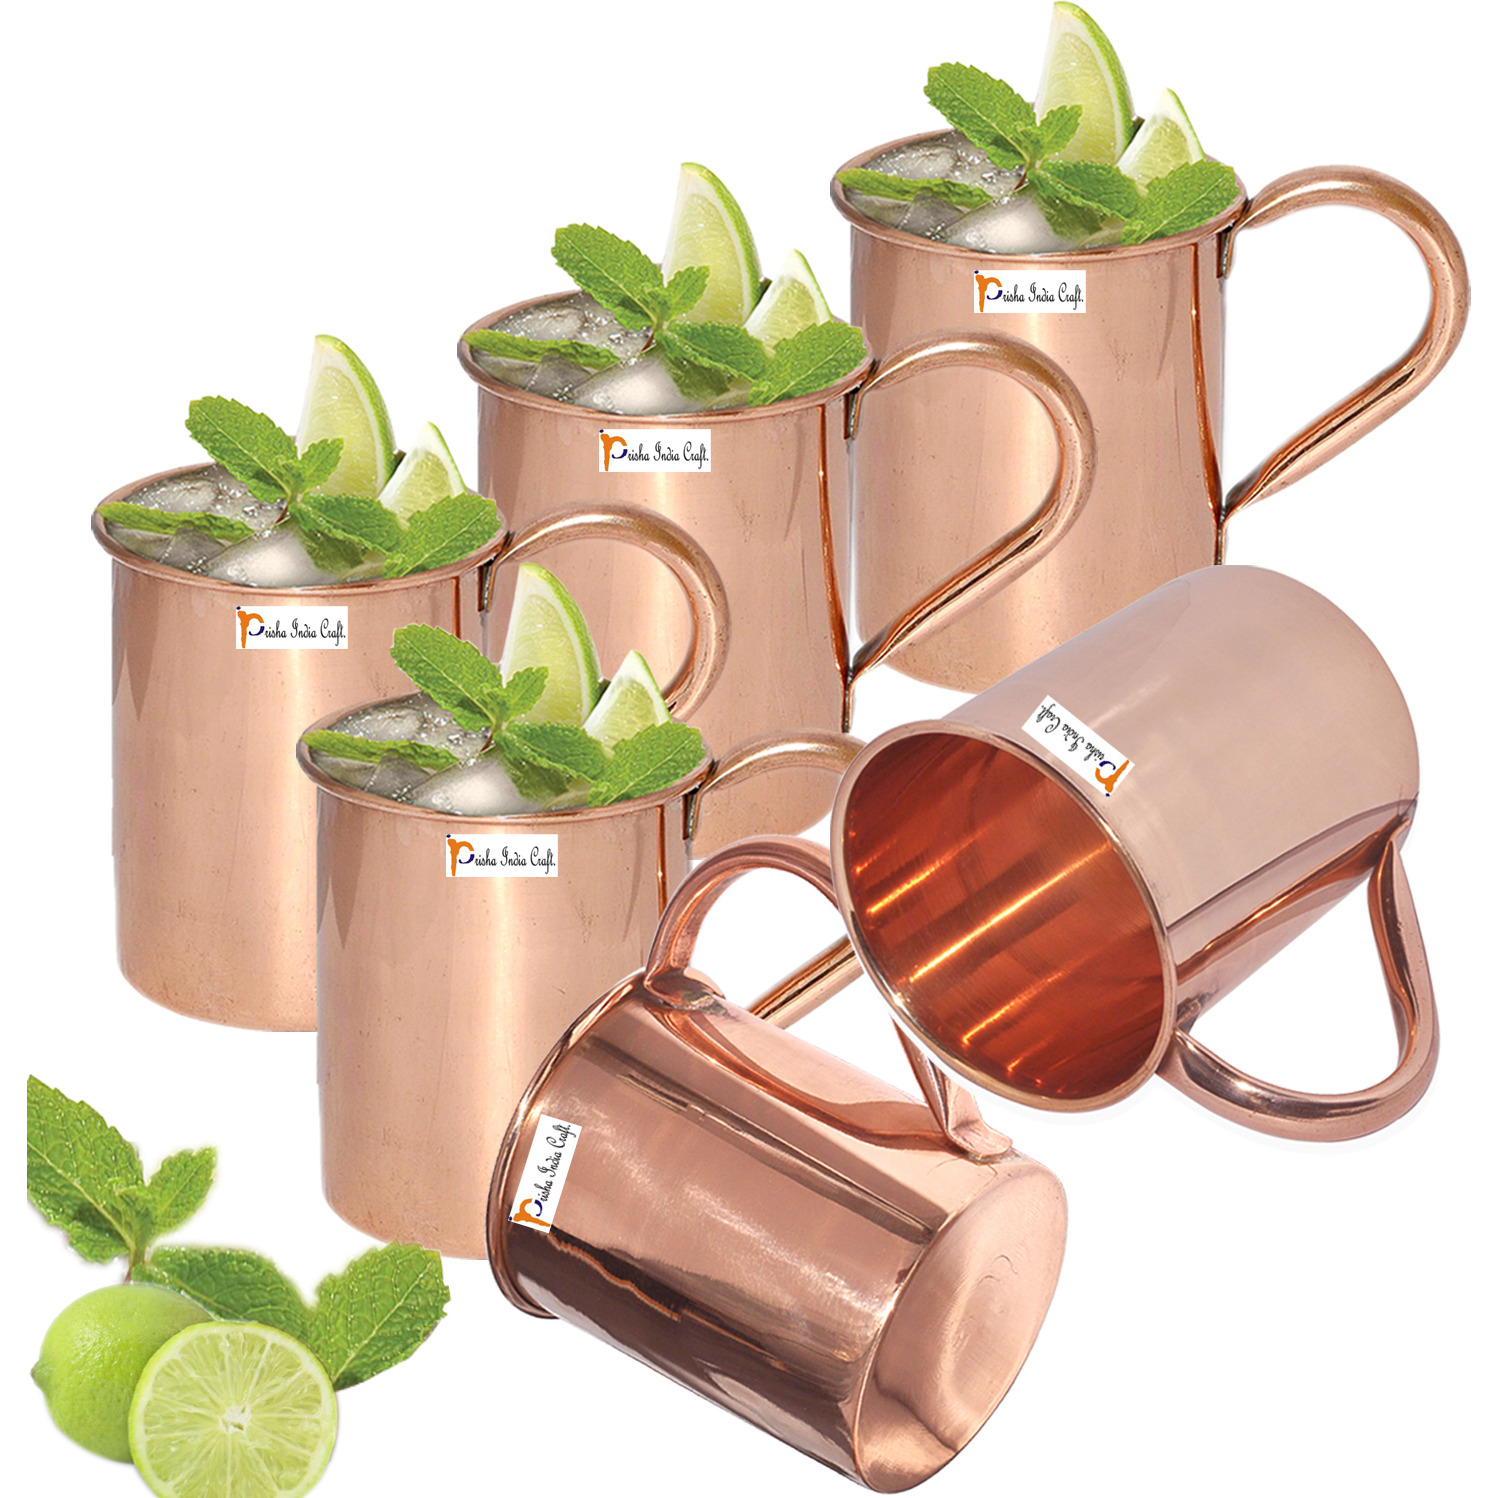 Set of 6 - Prisha India Craft B. Copper Mug for Moscow Mules 450 ML / 15 oz - 100% pure copper - Lacquered Finish Mule Cup, Moscow Mule Cocktail Cup, Copper Mugs, Cocktail Mugs with No Inner Linings